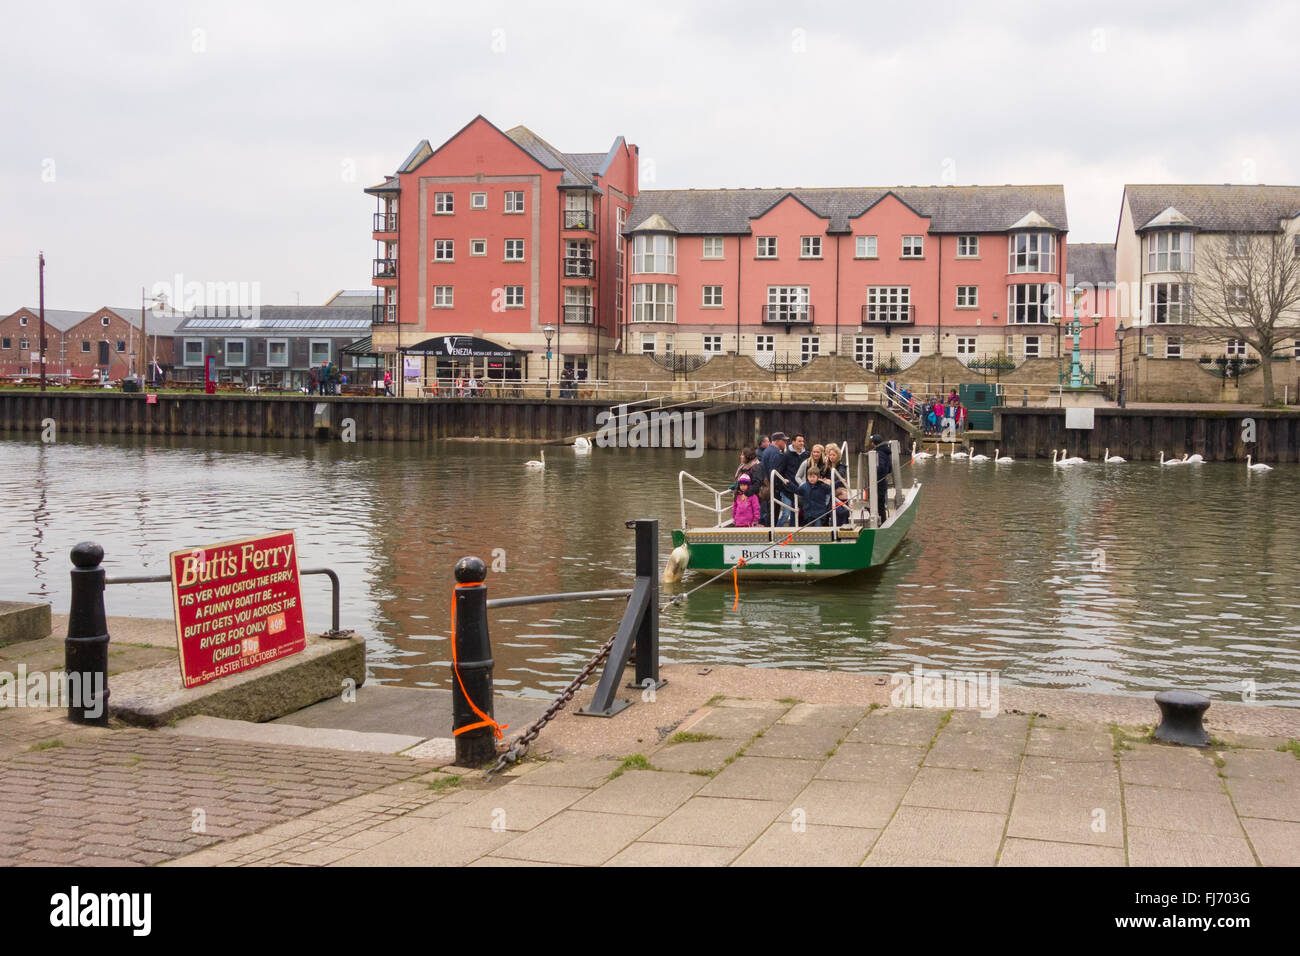 Exeter Quay - Butts Ferry - a hand-operated pedestrian cable ferry that crosses the River Exe - Stock Image